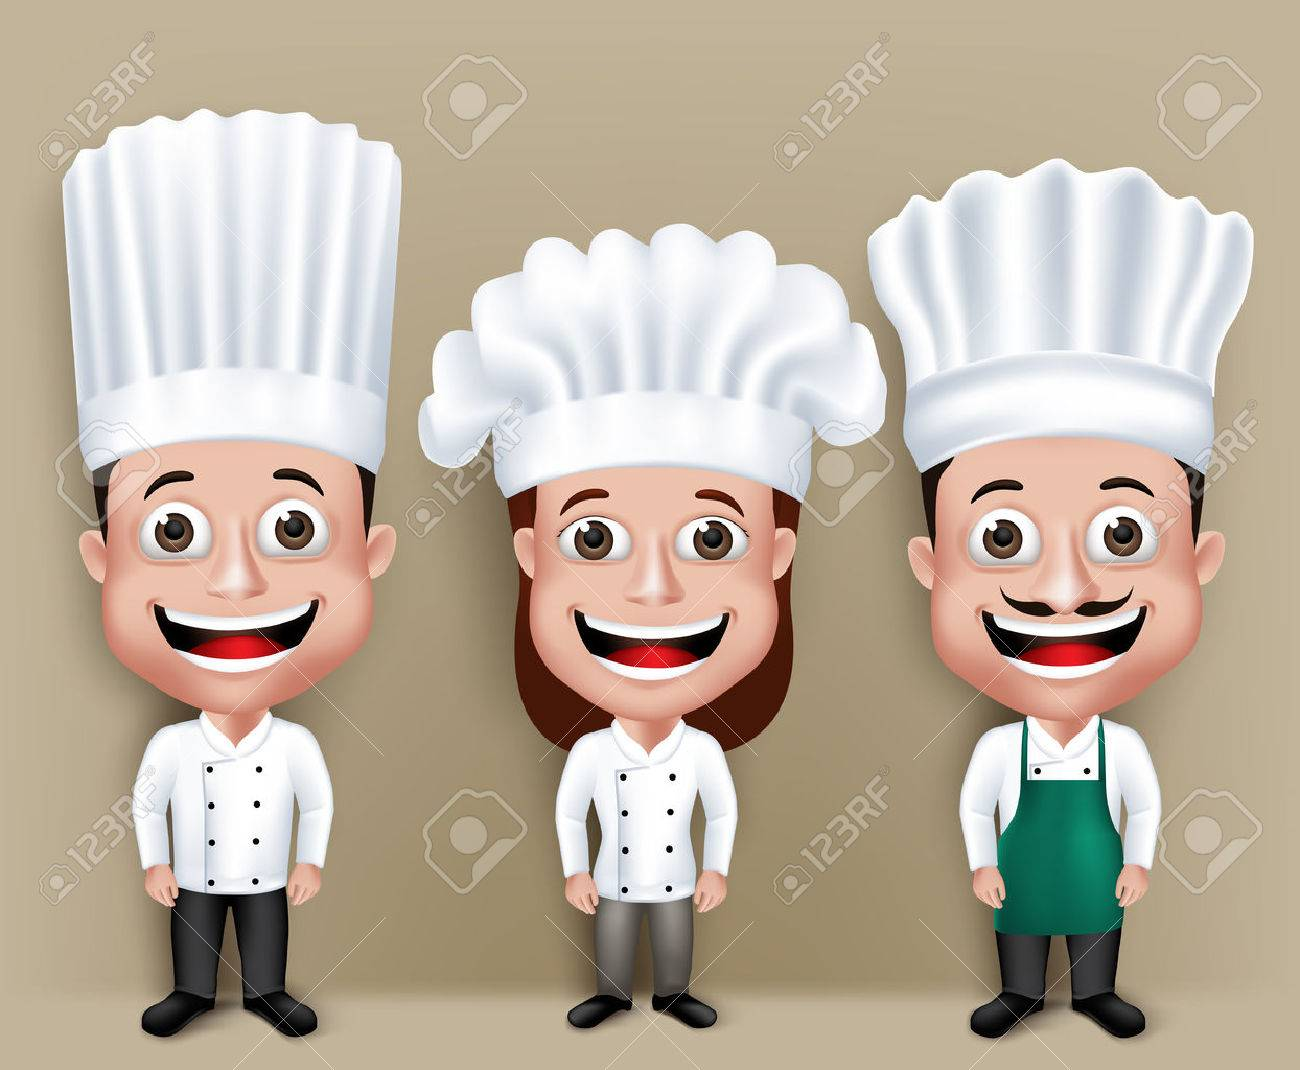 Set of Realistic 3D Chef Man and Woman Characters Happy Smiling in Culinary Dress Attire for Cooking. - 43261133